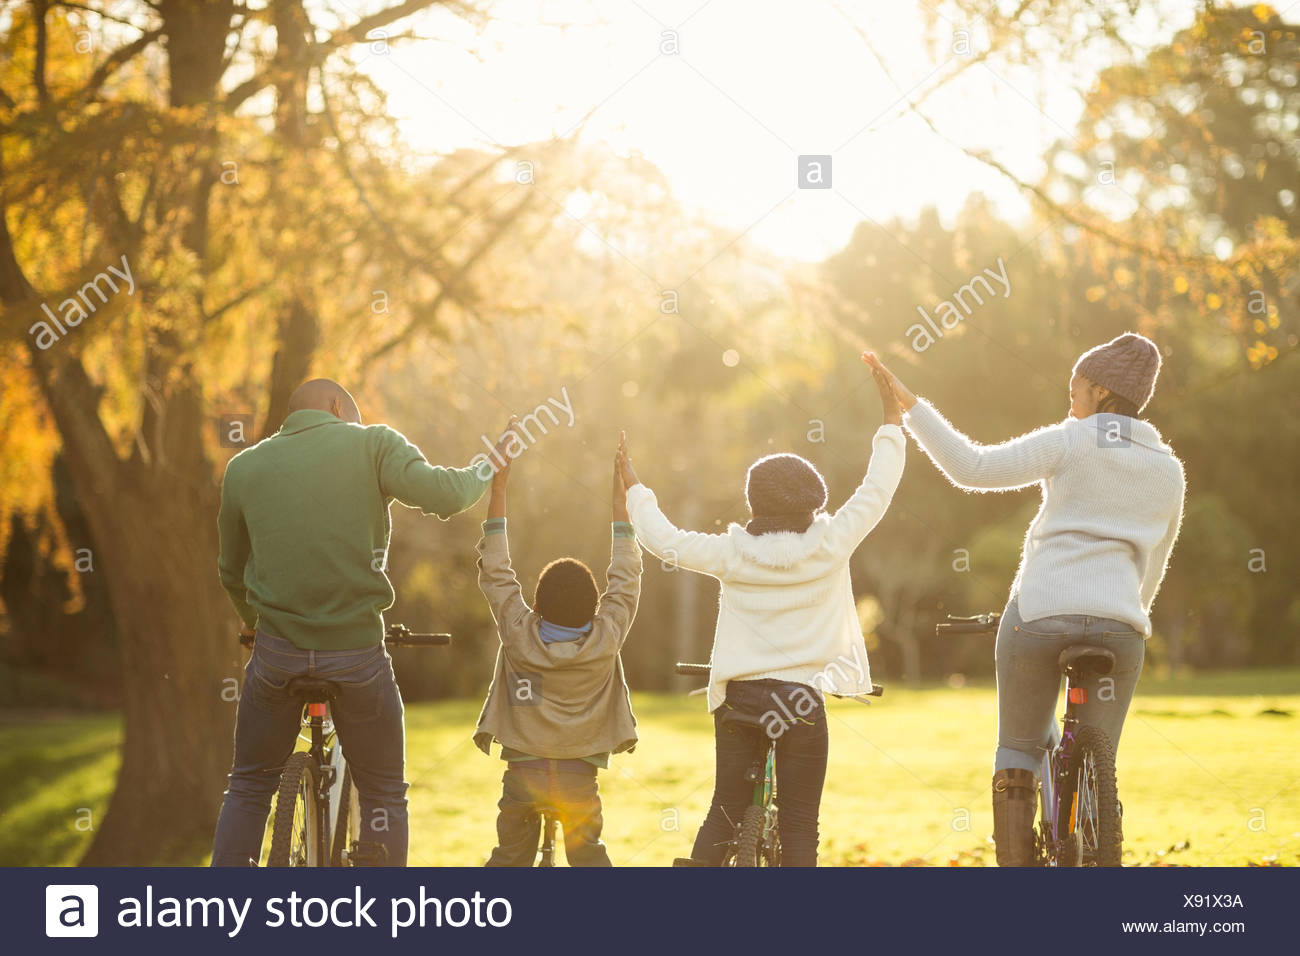 Rear view of a young family with arms raised on bike - Stock Image